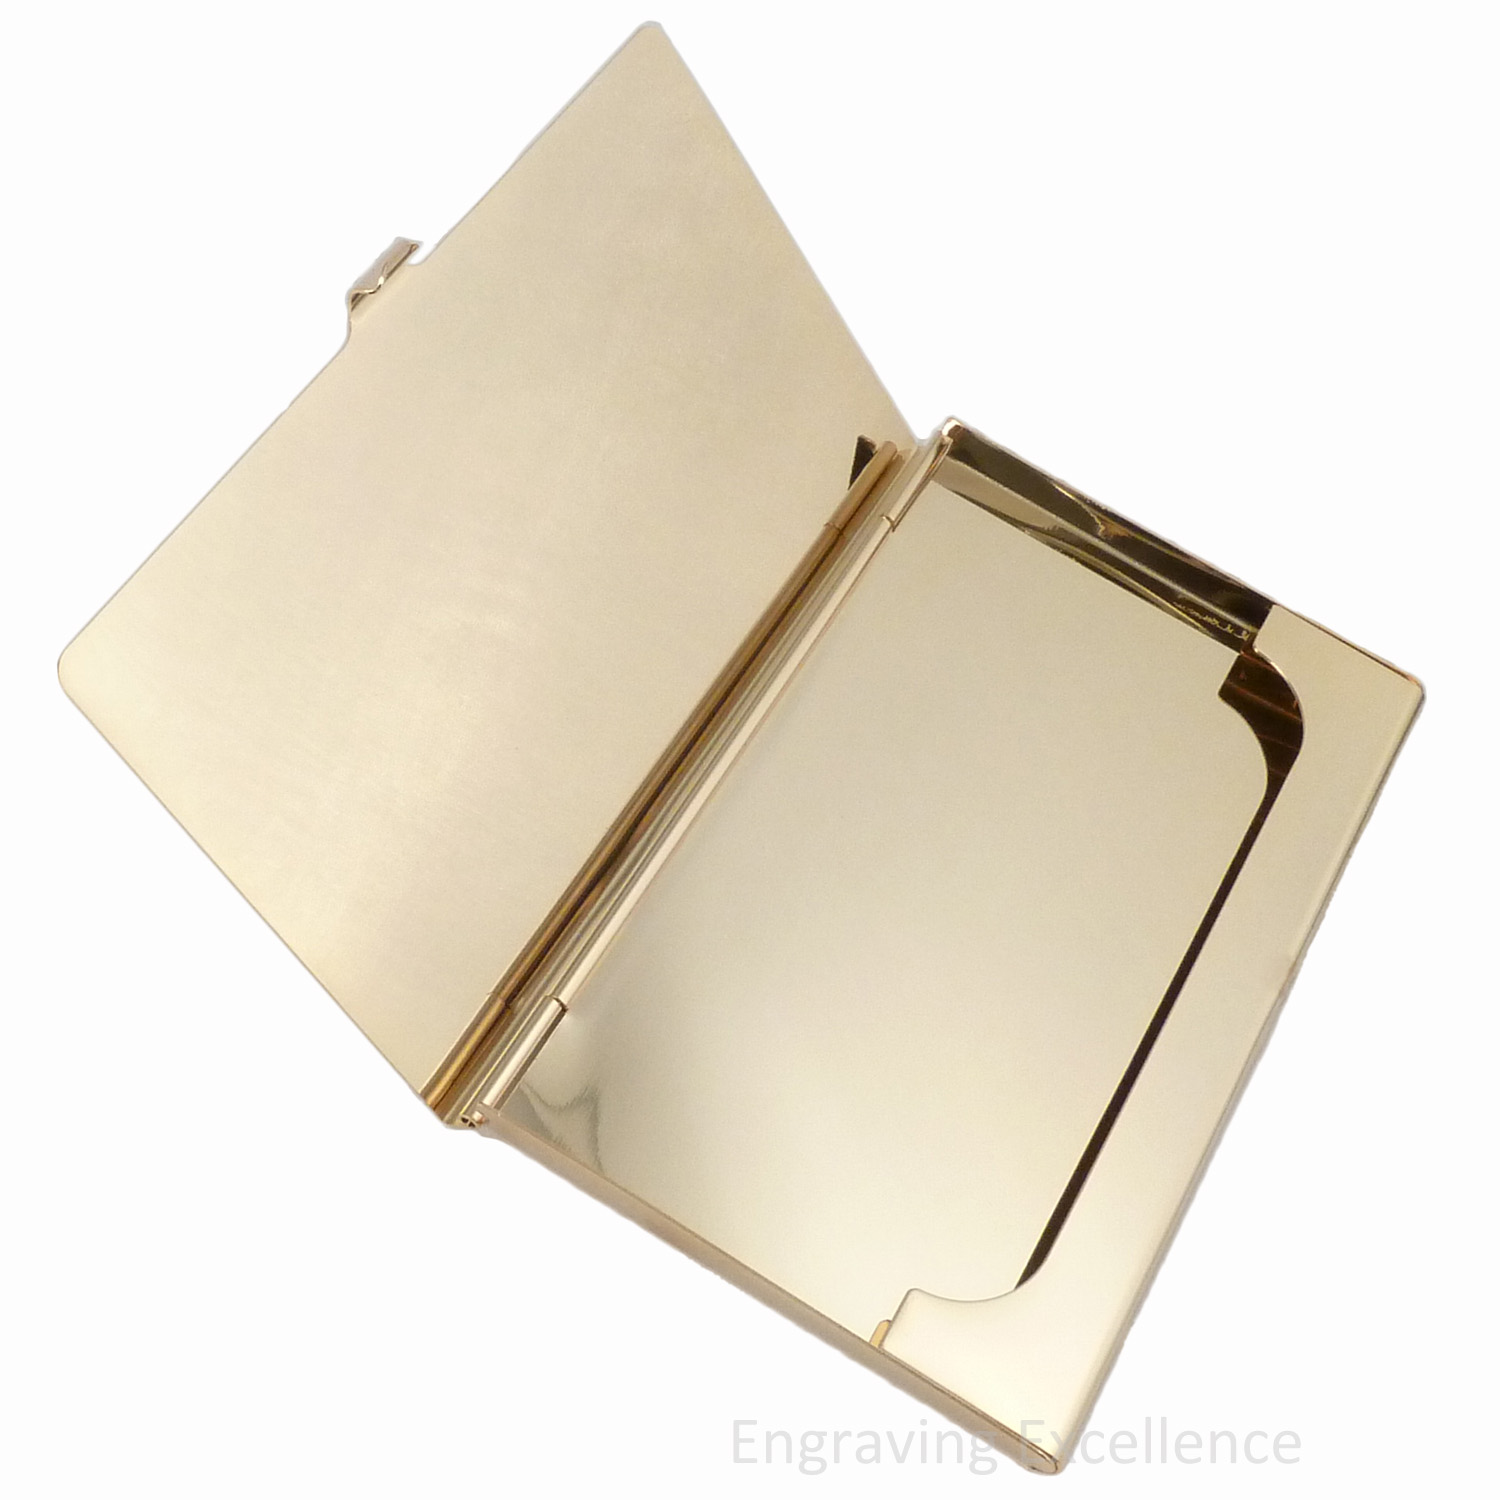 Gold Plated Business Card Holder Business Card Holders from